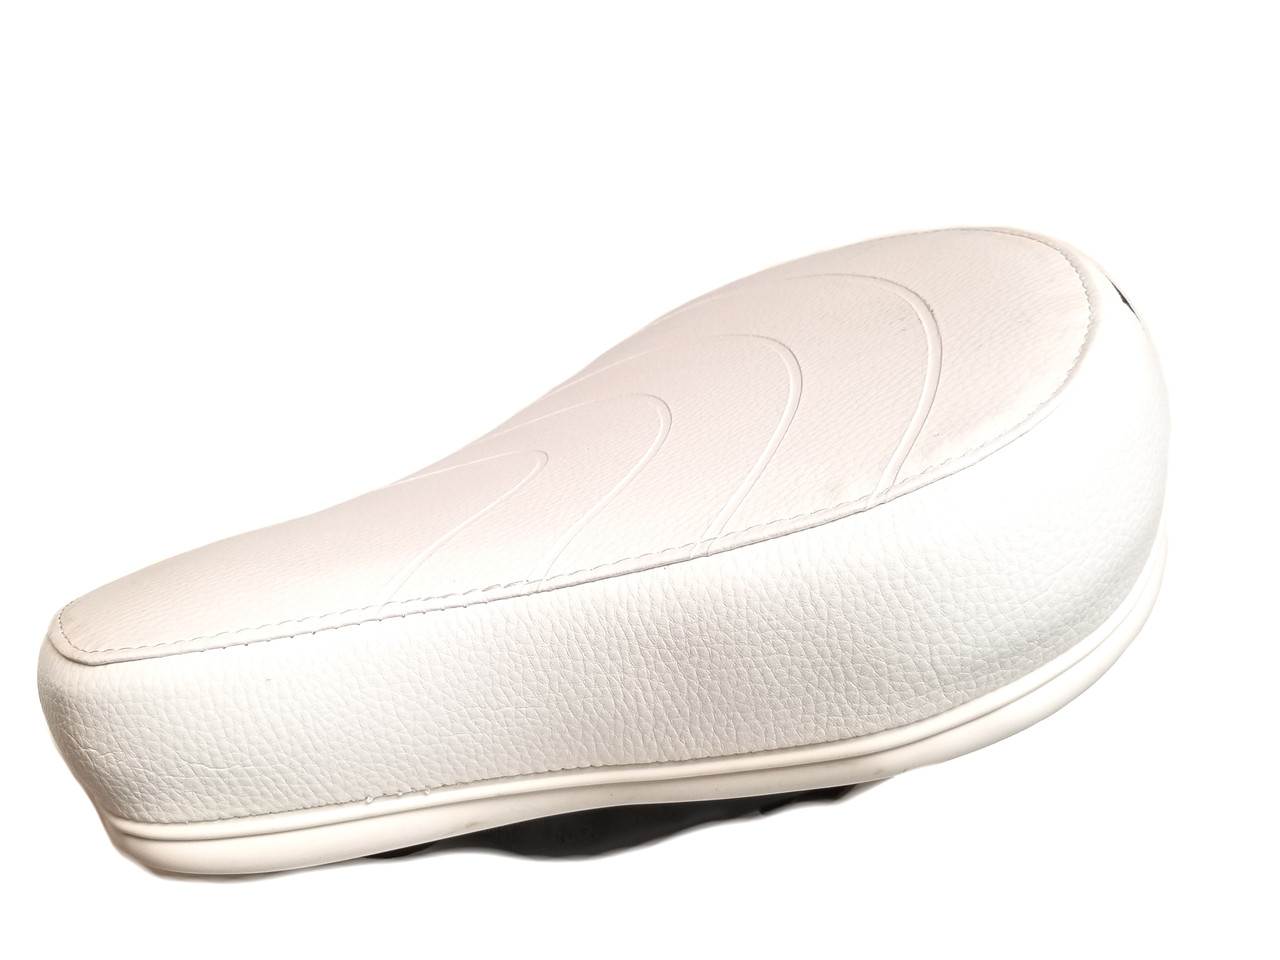 Puch White Saddle Seat - Low Profile Cushion